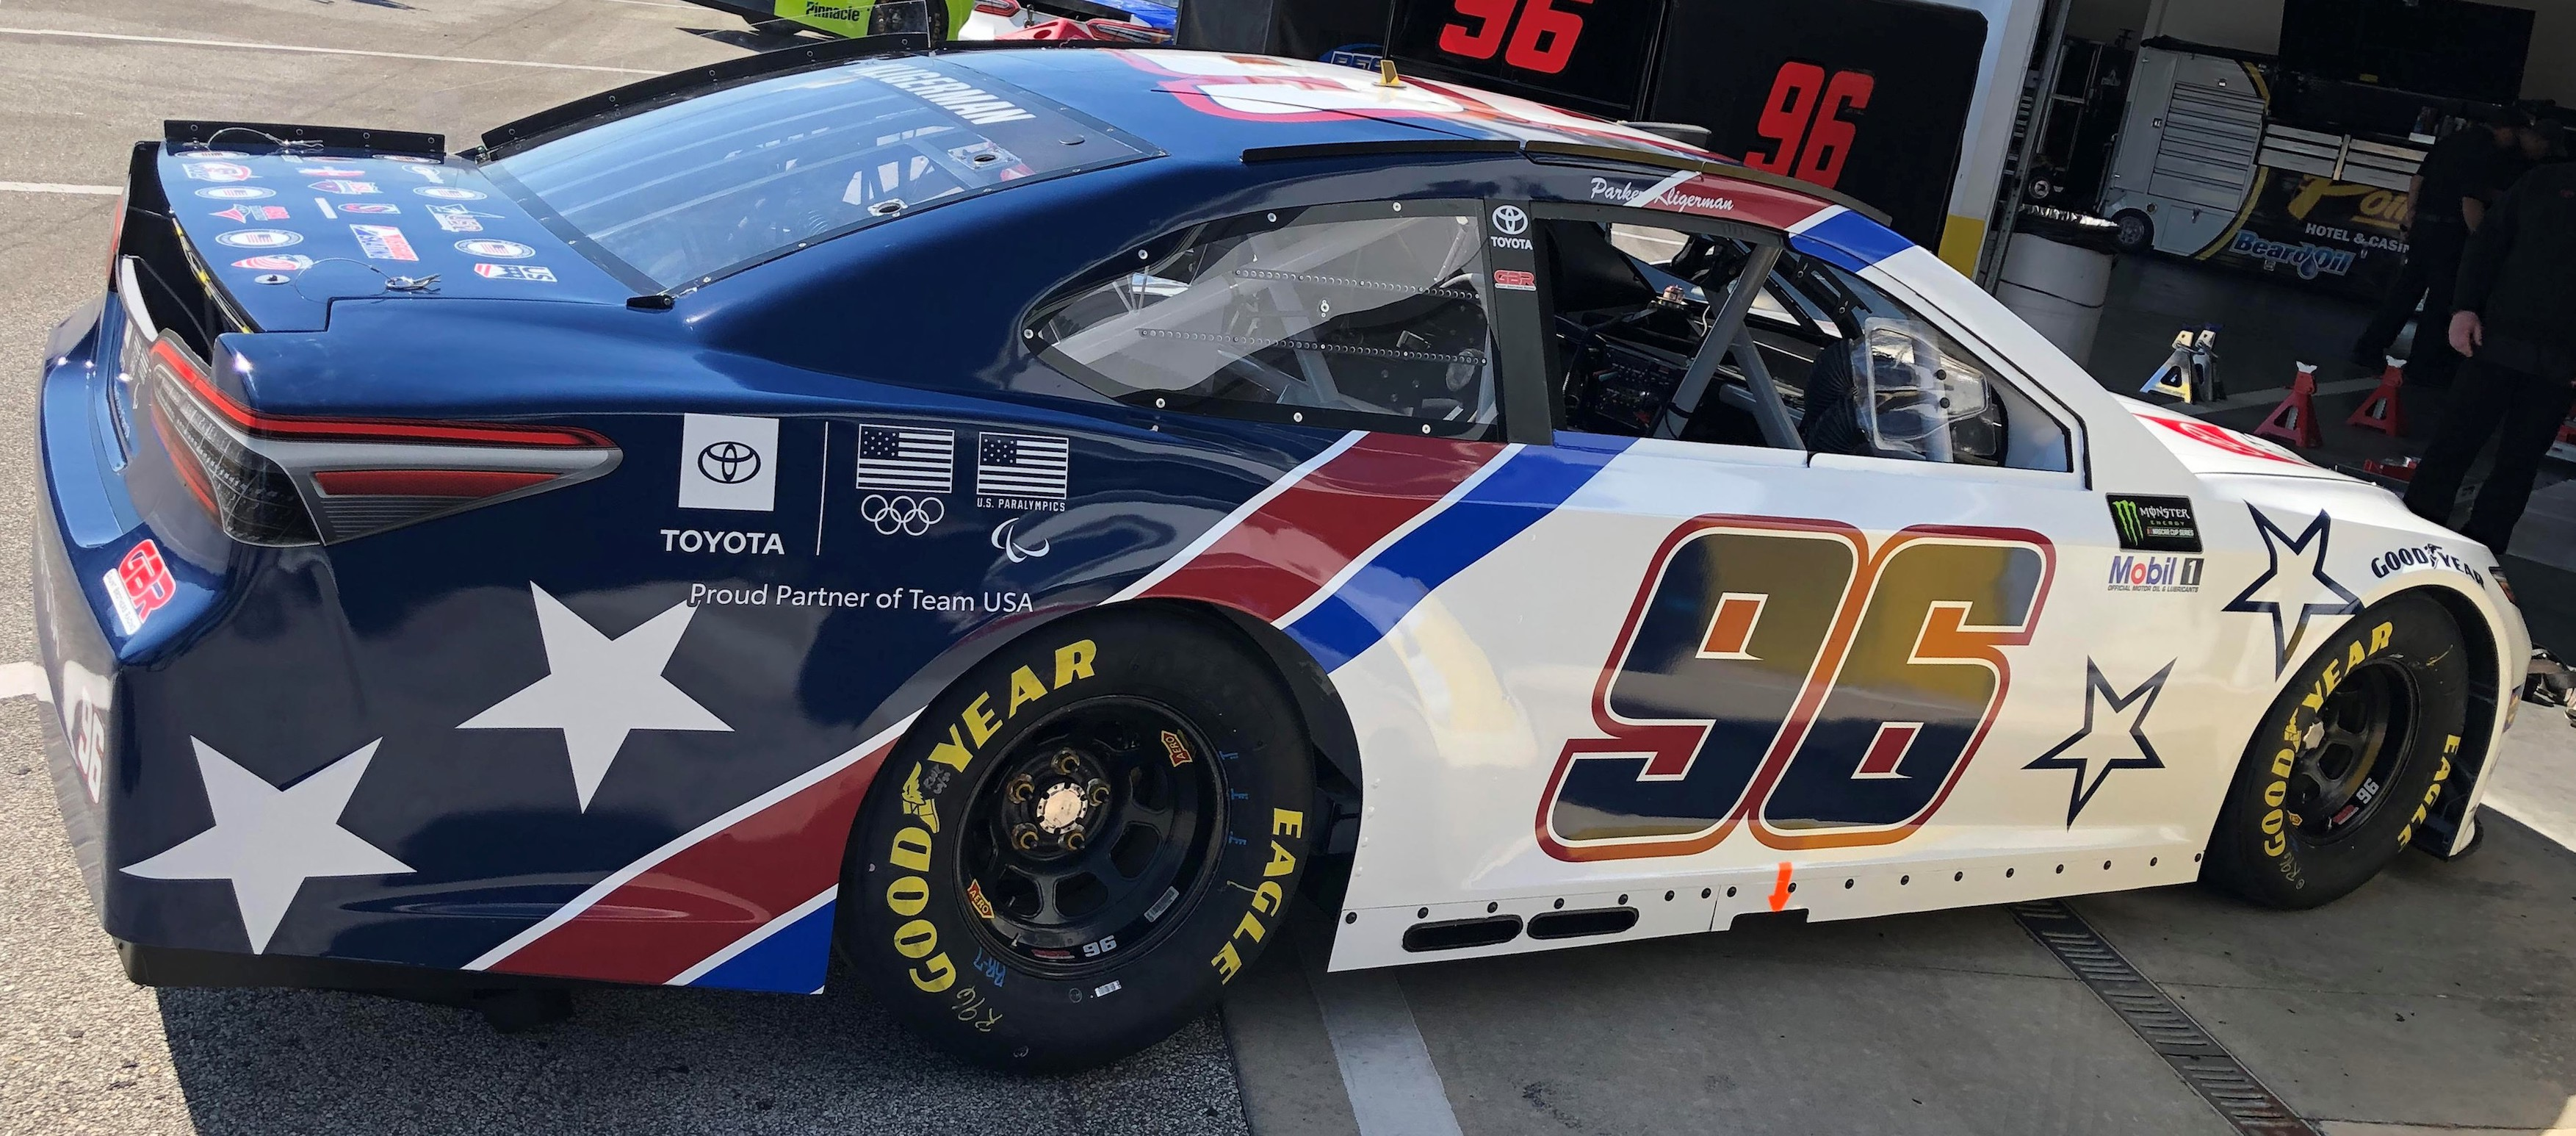 Toyota Of Plano >> Toyota Highlights Team USA Partnership in NASCAR - Gaunt Brothers Racing